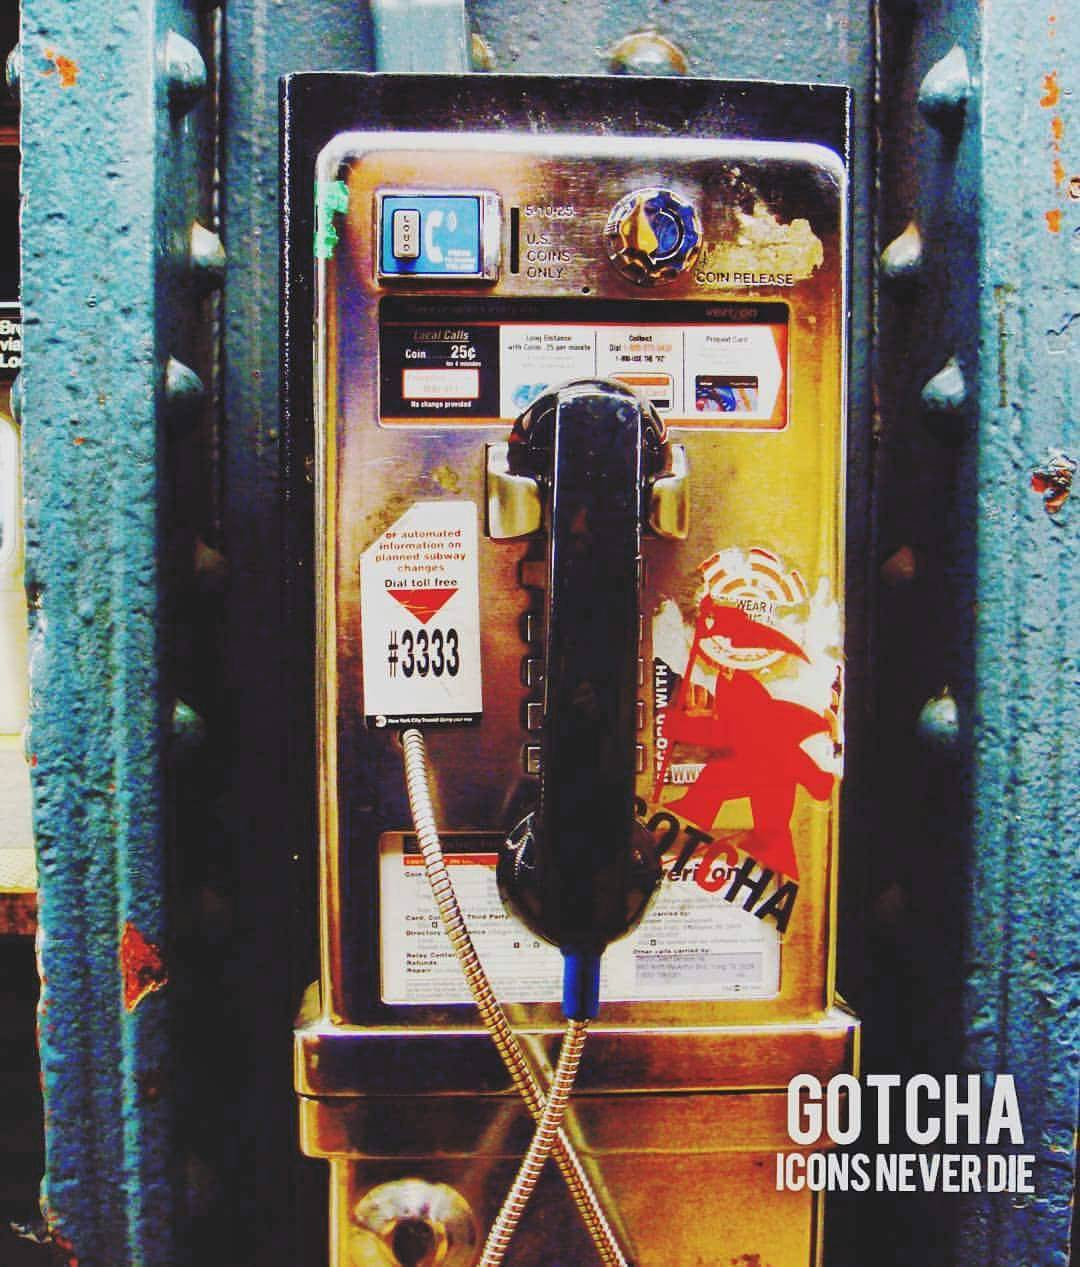 CALL ME!  #gotcha #iconsneverdie